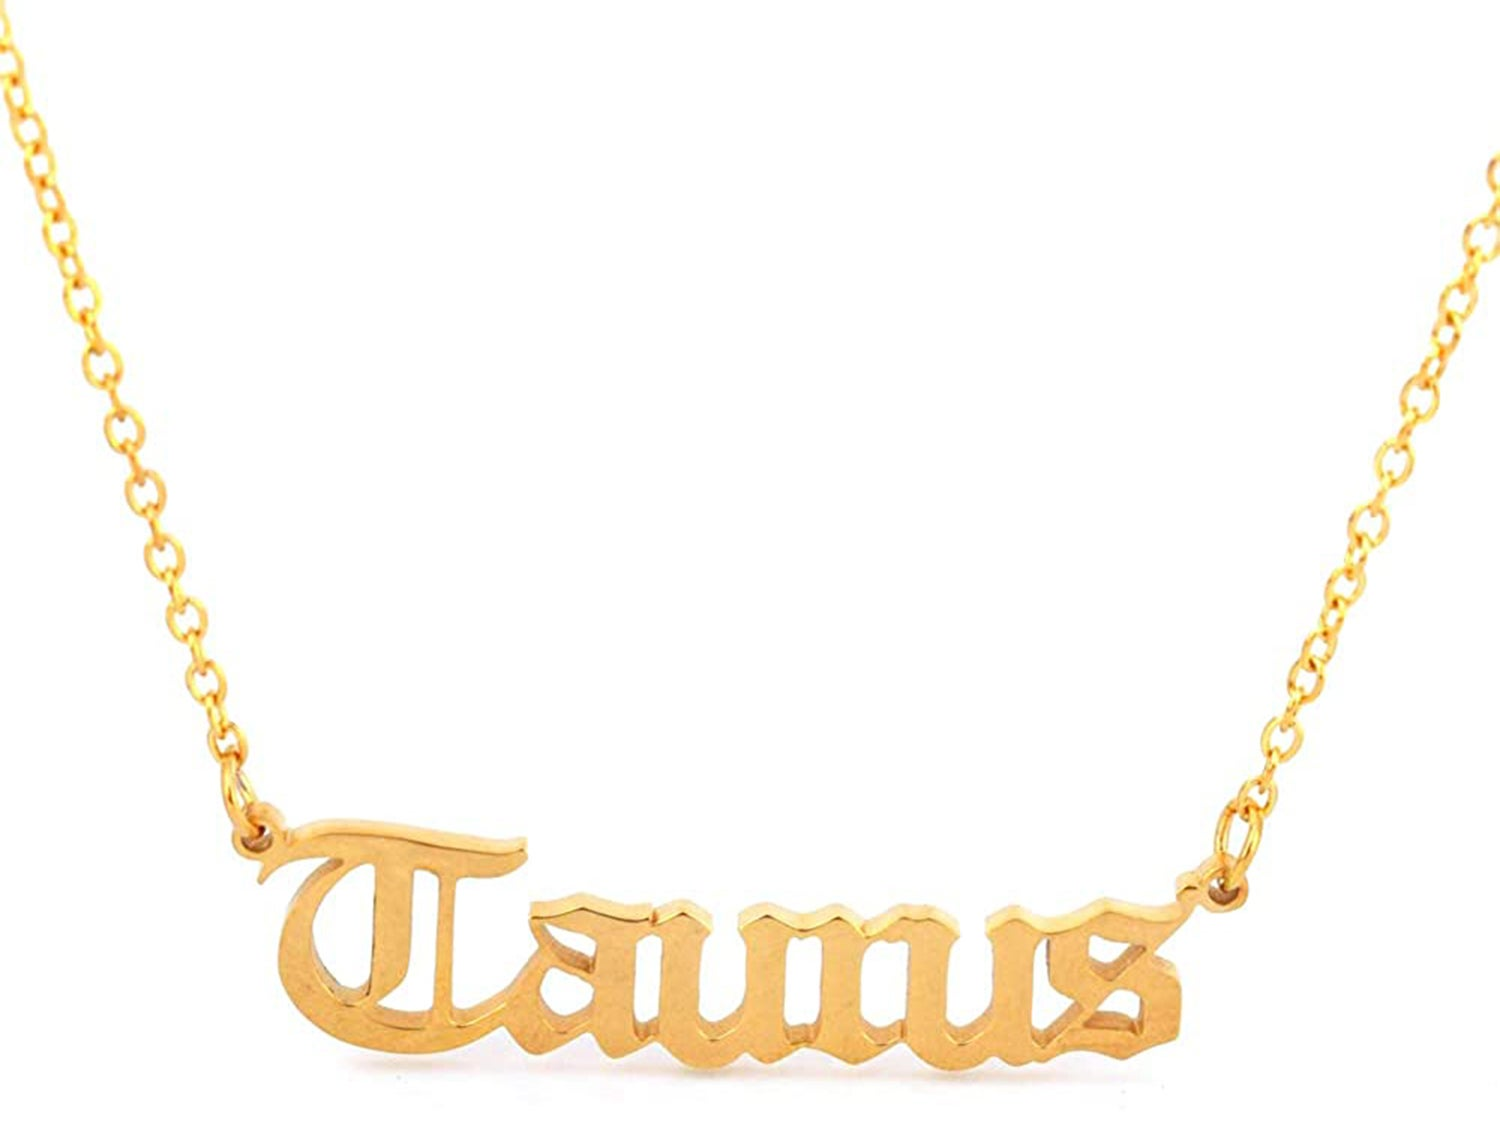 HUTINICE Old English Necklace for Women, 18K Gold